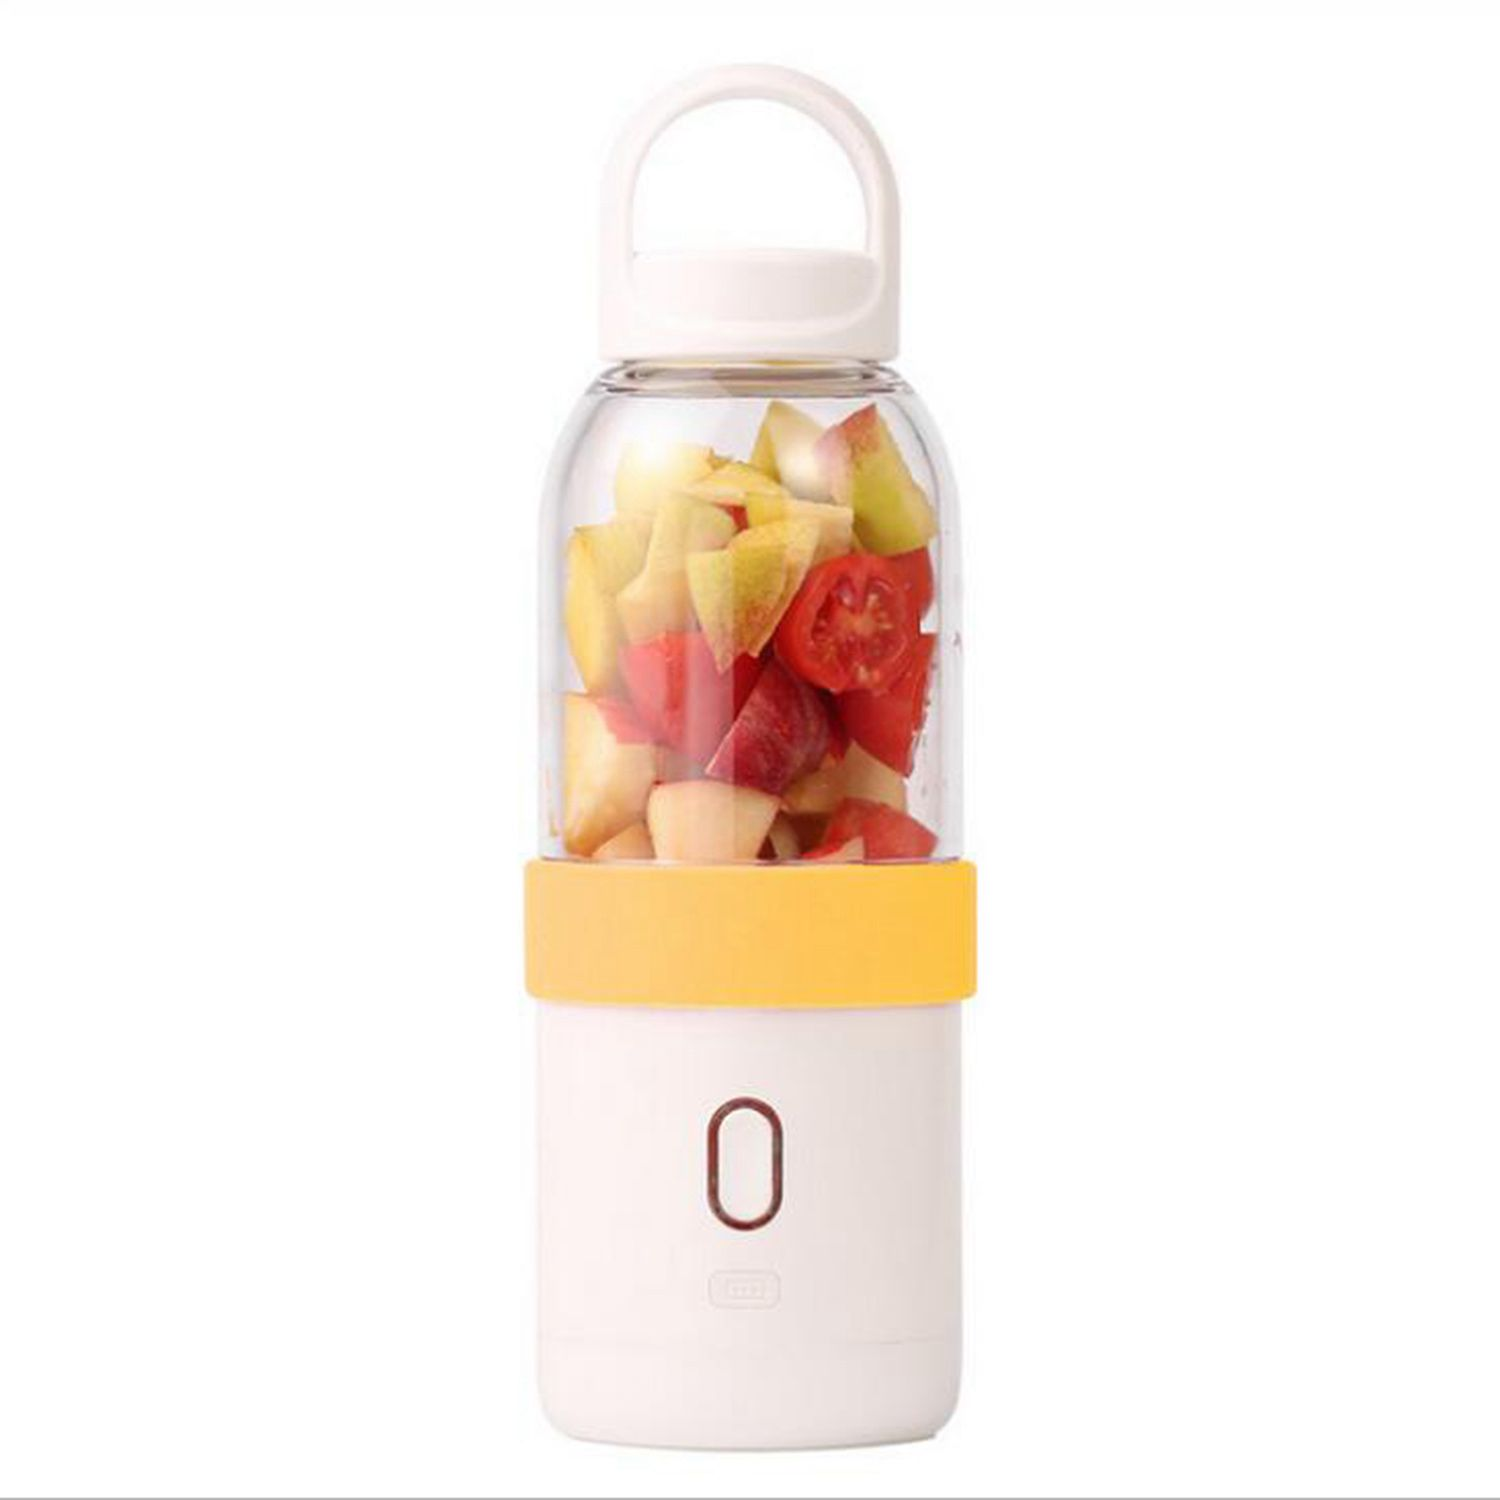 New 550ml Portable Blender USB Juicer Cup Fruit Vegetable Mixer Smoothie Milk Shake Hand Personal Blender Small Juice Extractor